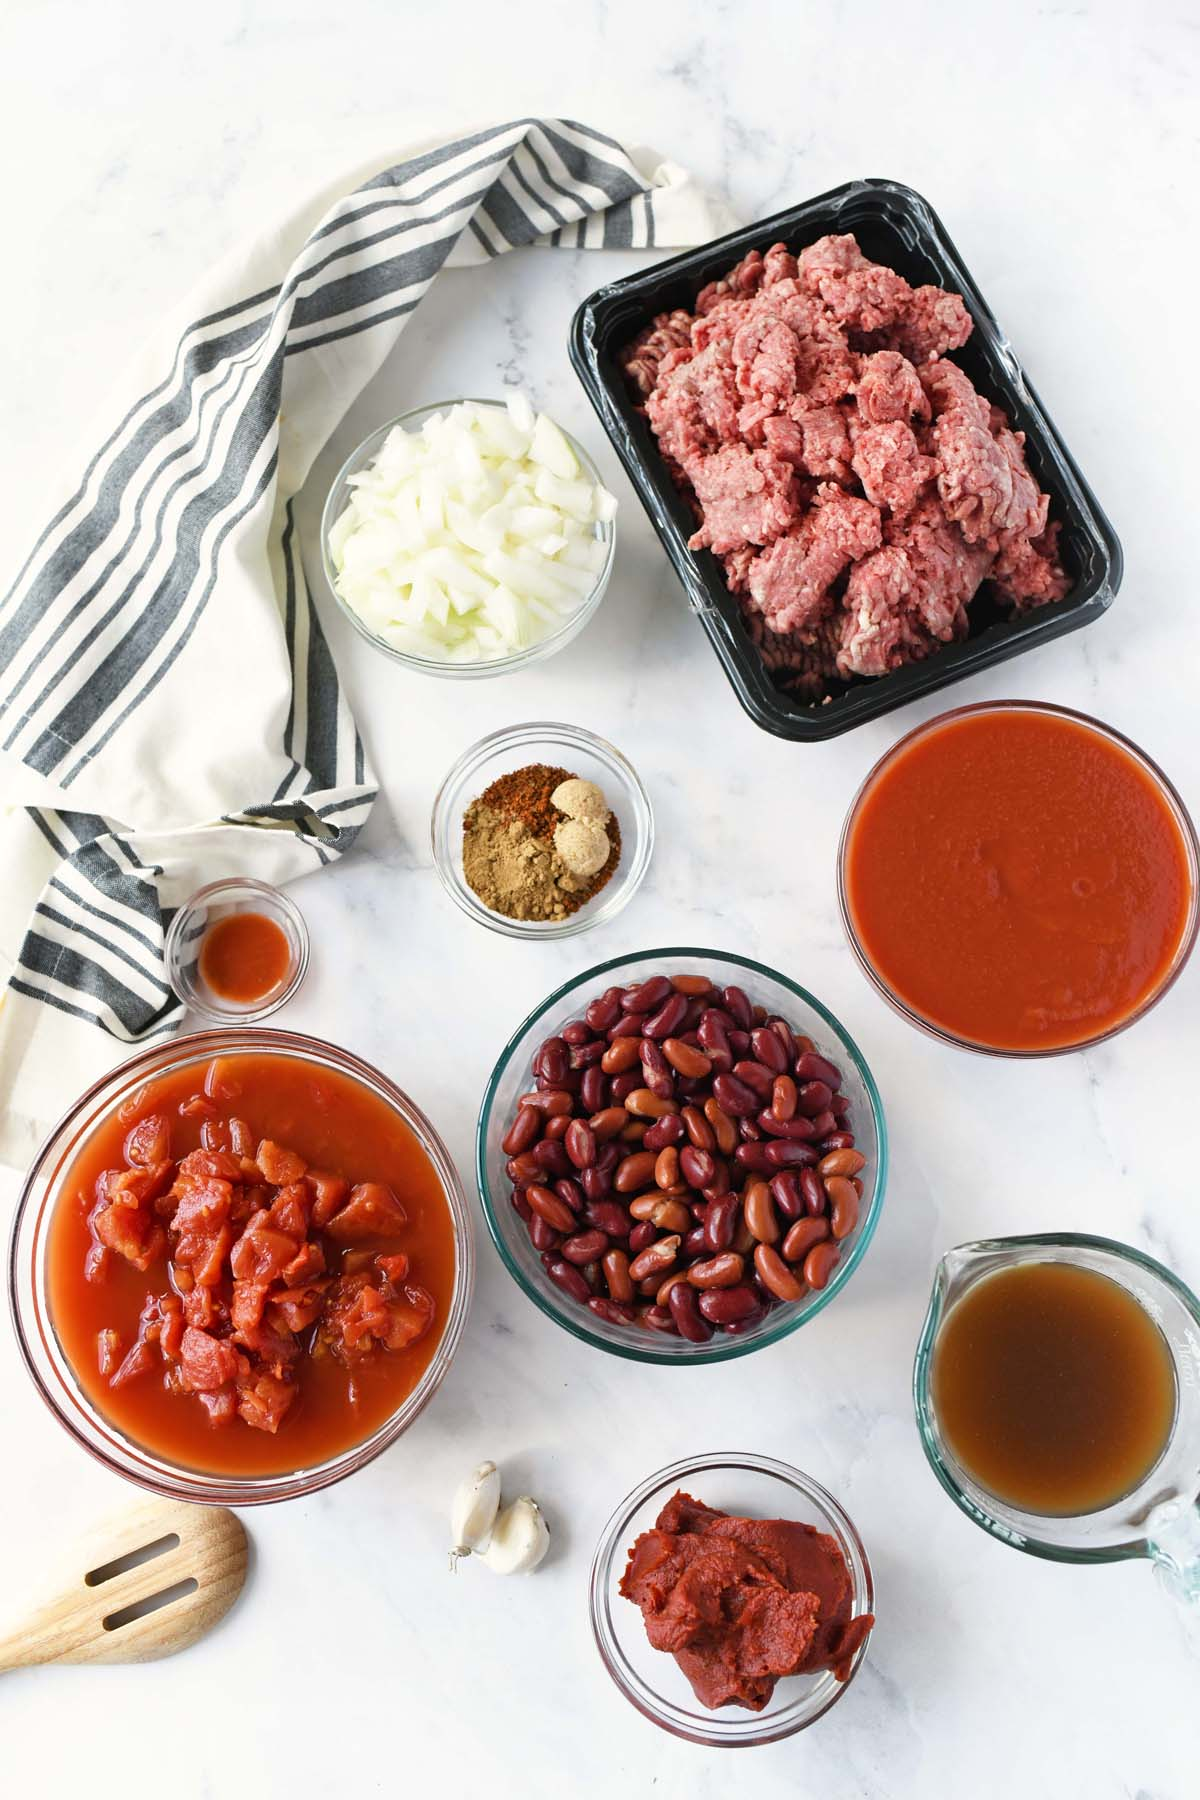 Classic chili ingredients in glass bowls on a marble table.